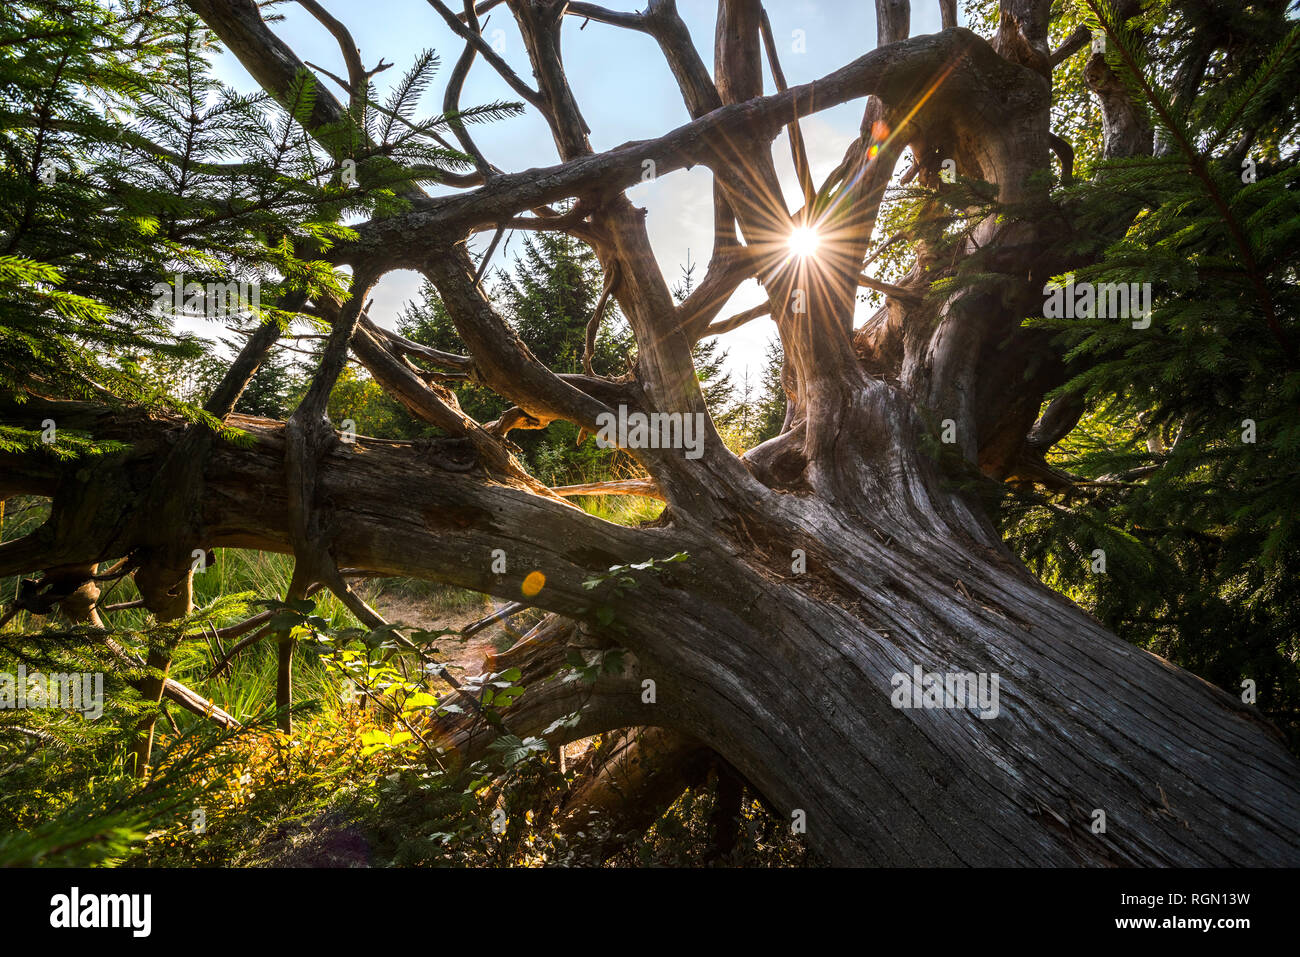 sunset seen through huge old root, Northern Black Forest, Germany, nature reserve and experience trail Lotharpfad; sunrays and landscape Stock Photo